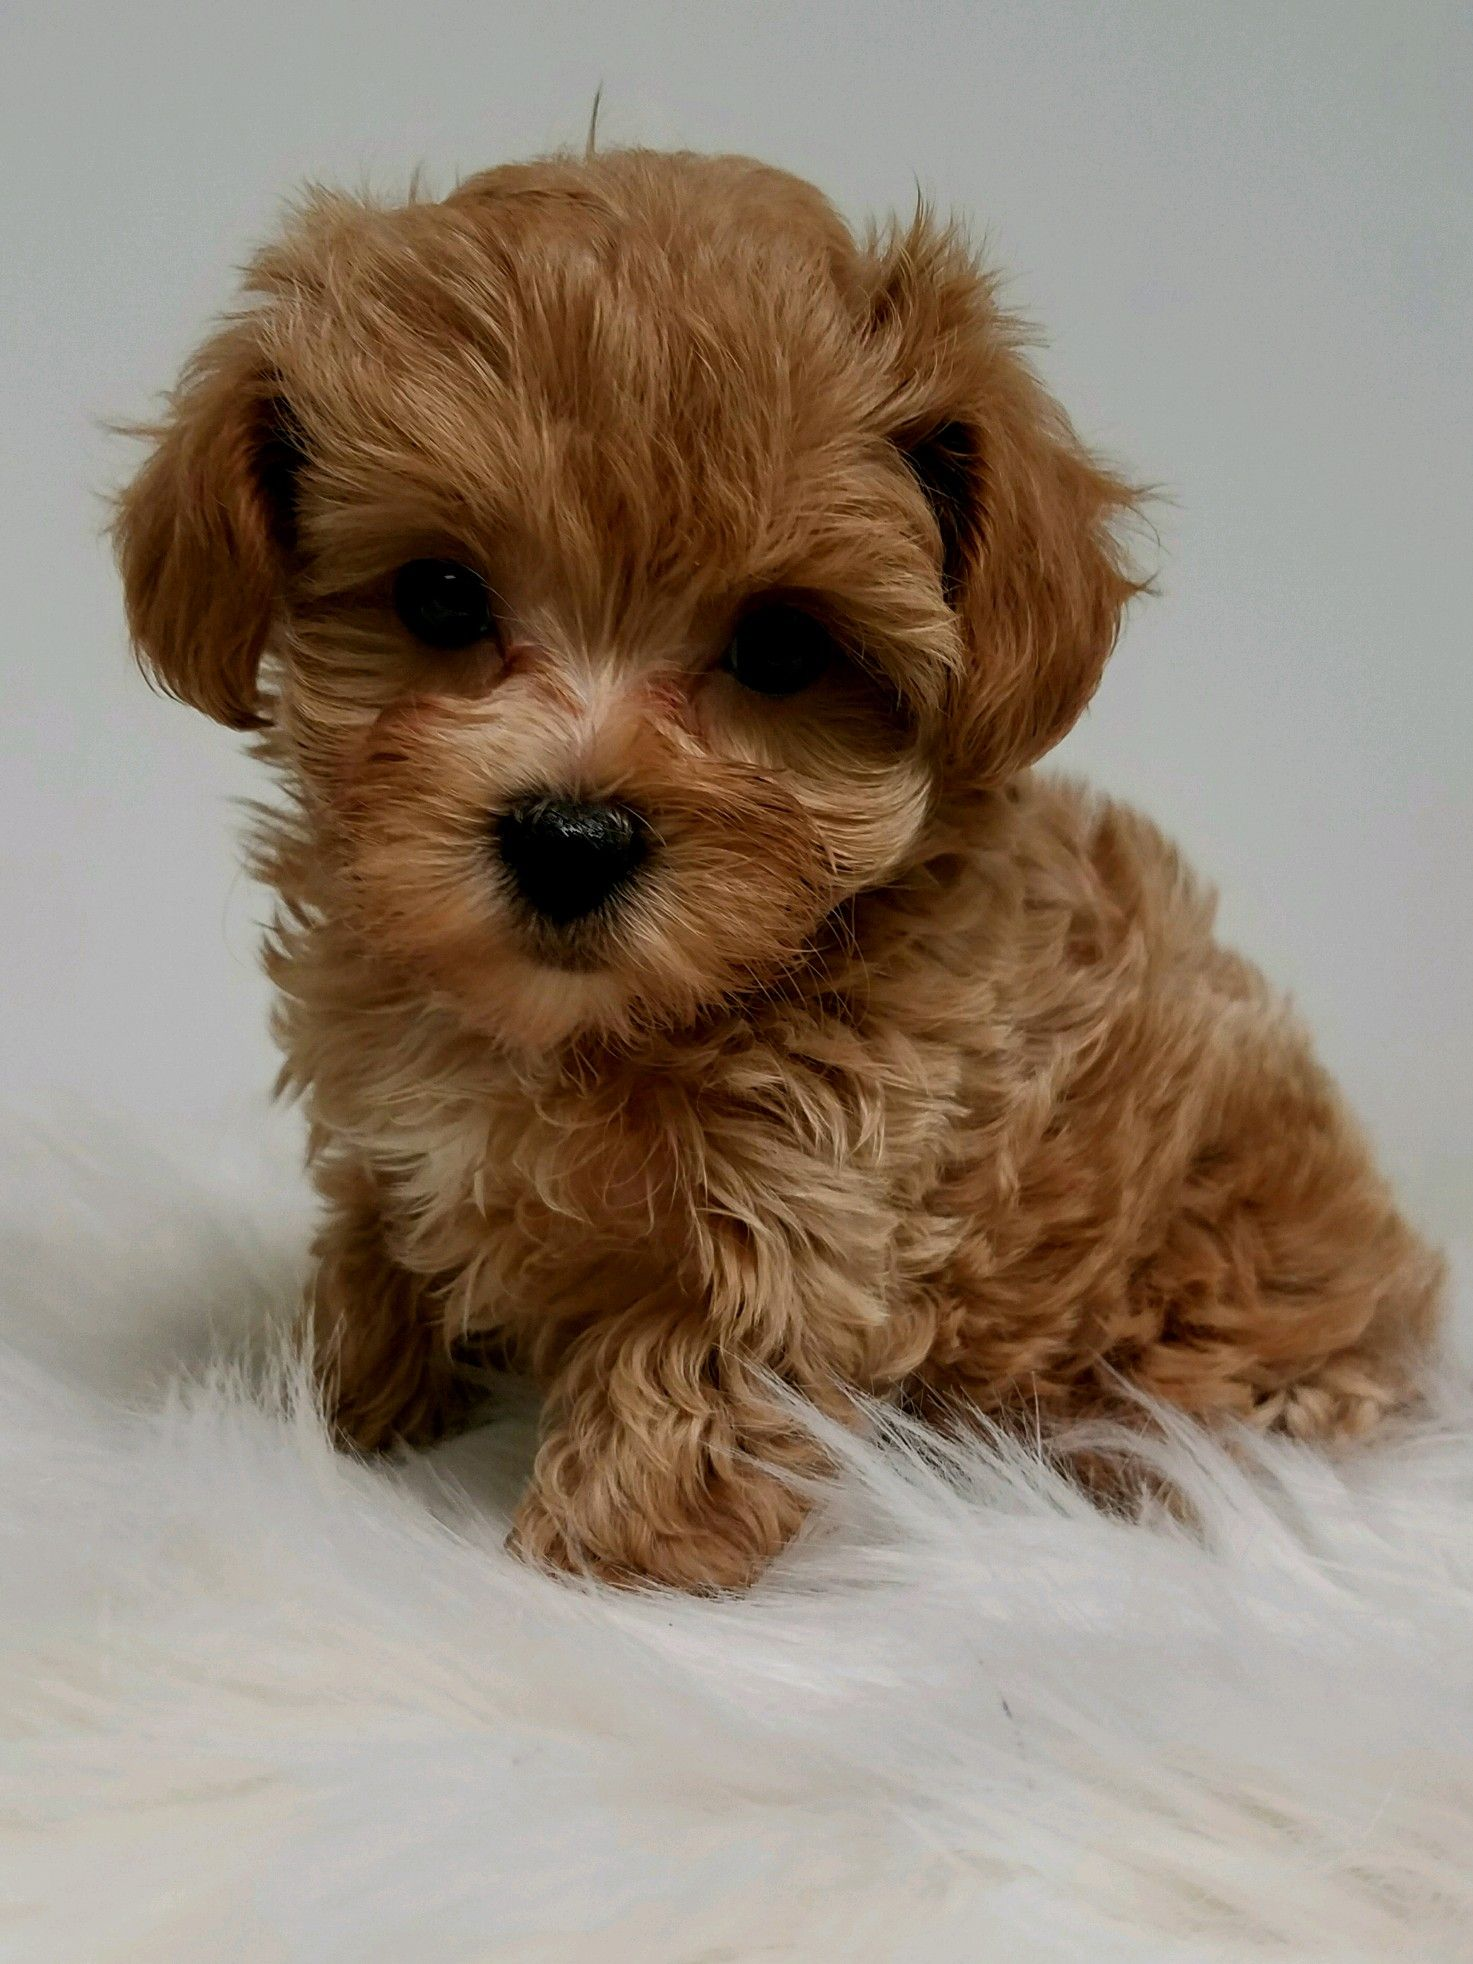 Designer And Mix Puppies Morkies Maltipoos Red Maltipoos Yorkshire Terrier Shih Tzu Havanese Toy And Teacup Poodles Cute Dogs Breeds Puppies Yorkie Poo